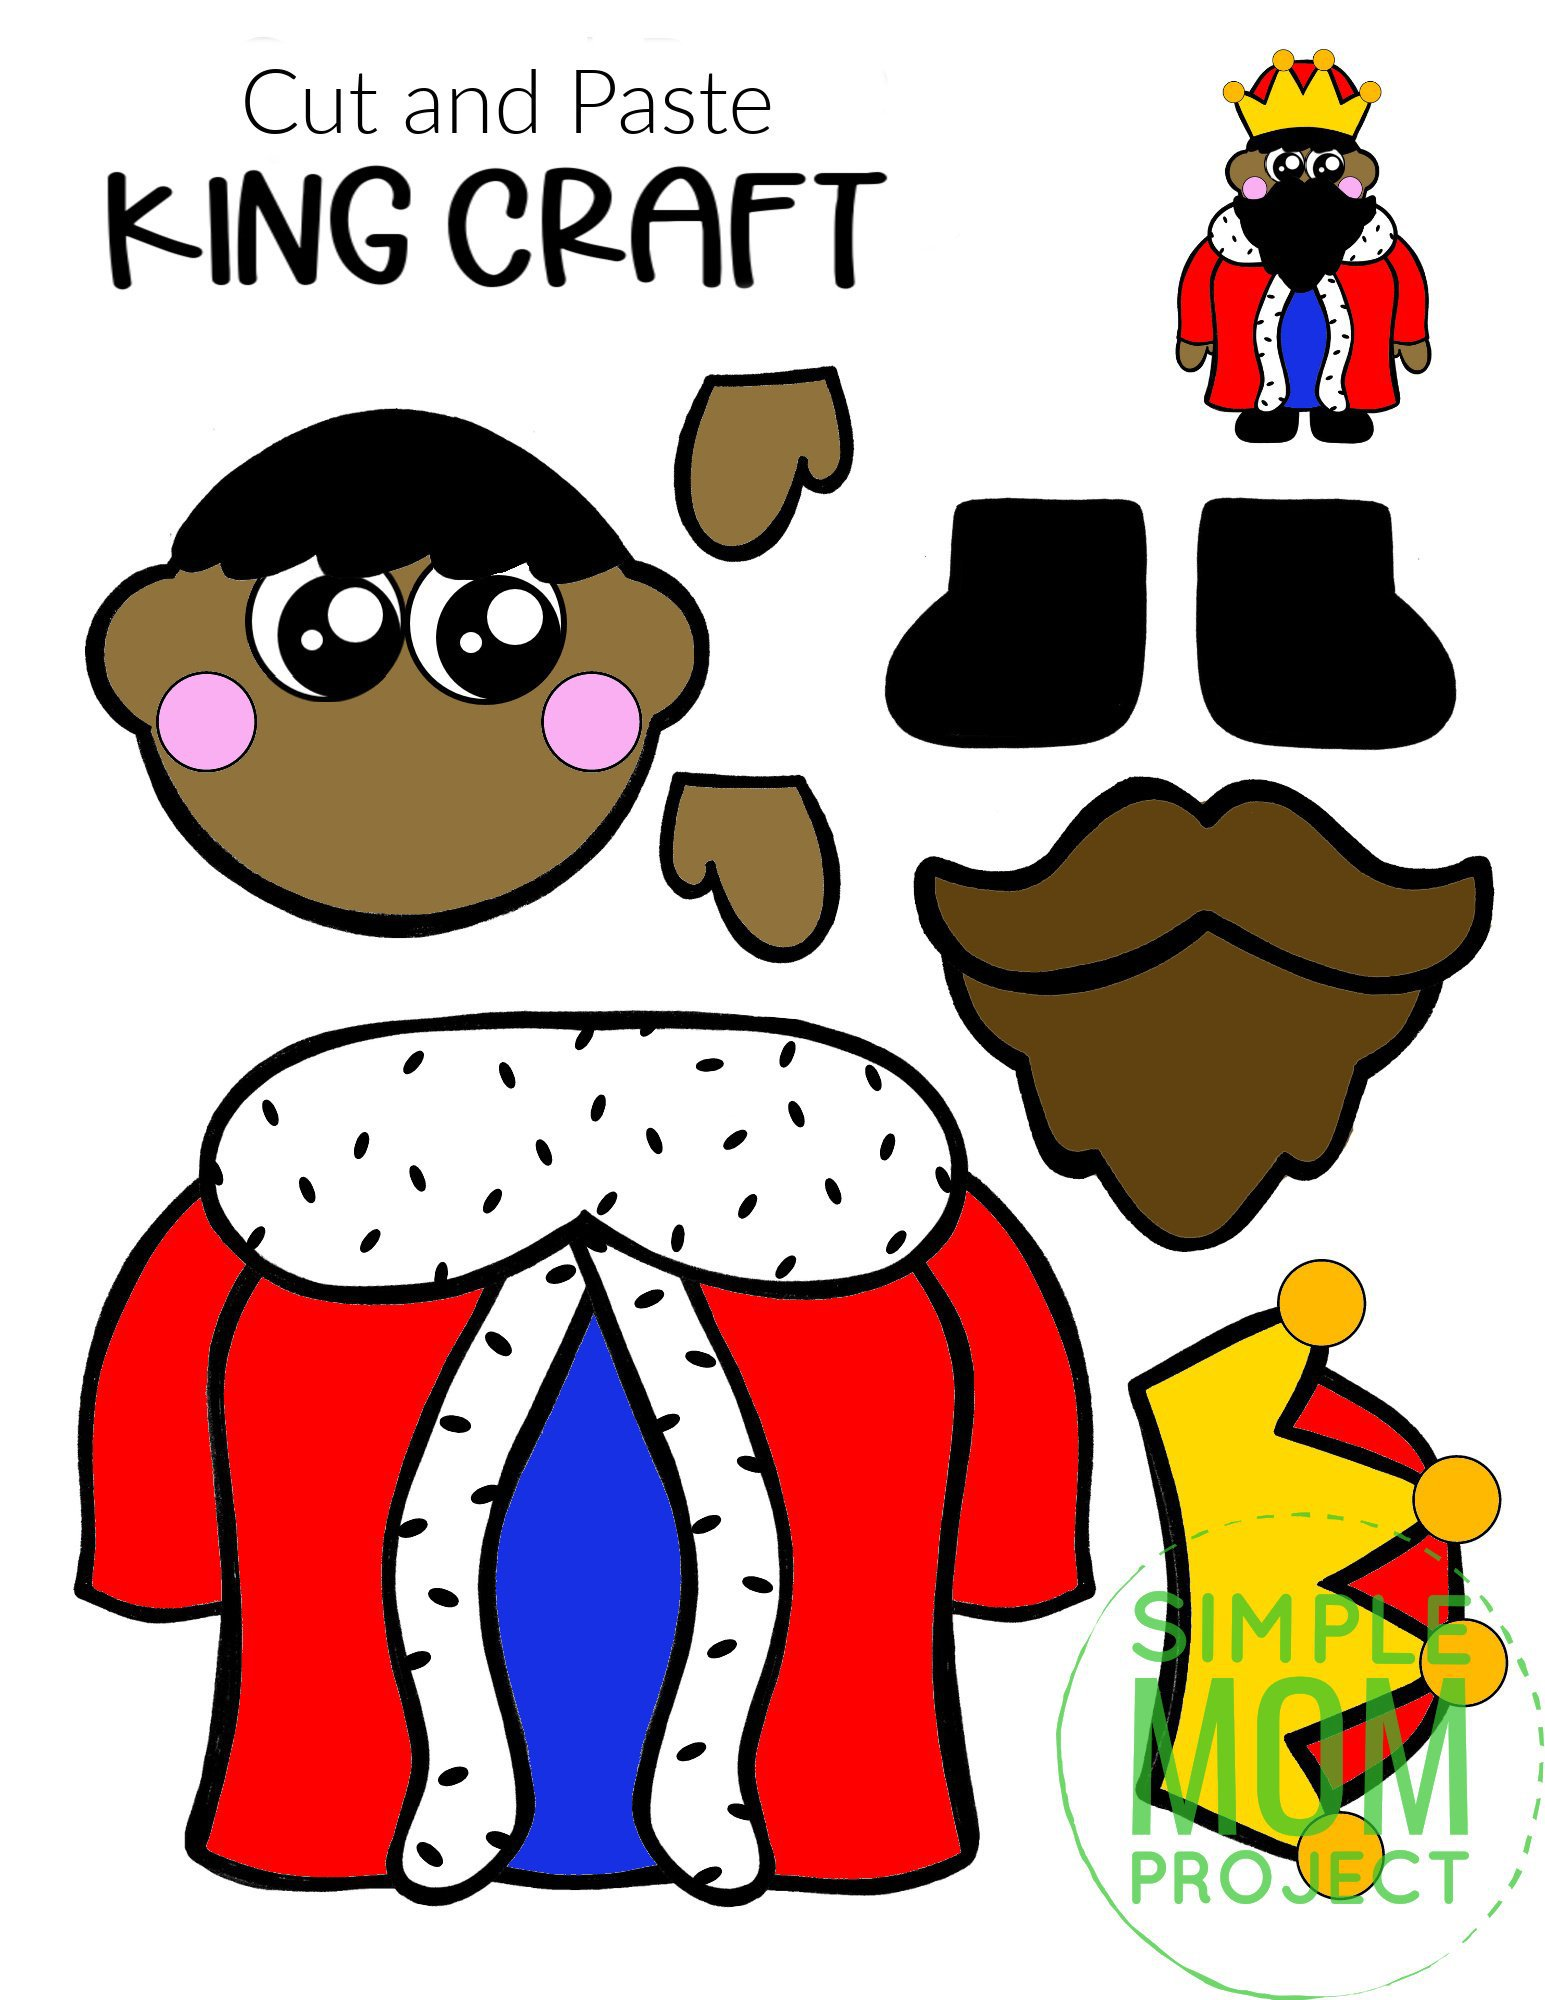 Free Printable Cut and Paste King Craft Template Craft for kids, preschoolers and toddlers